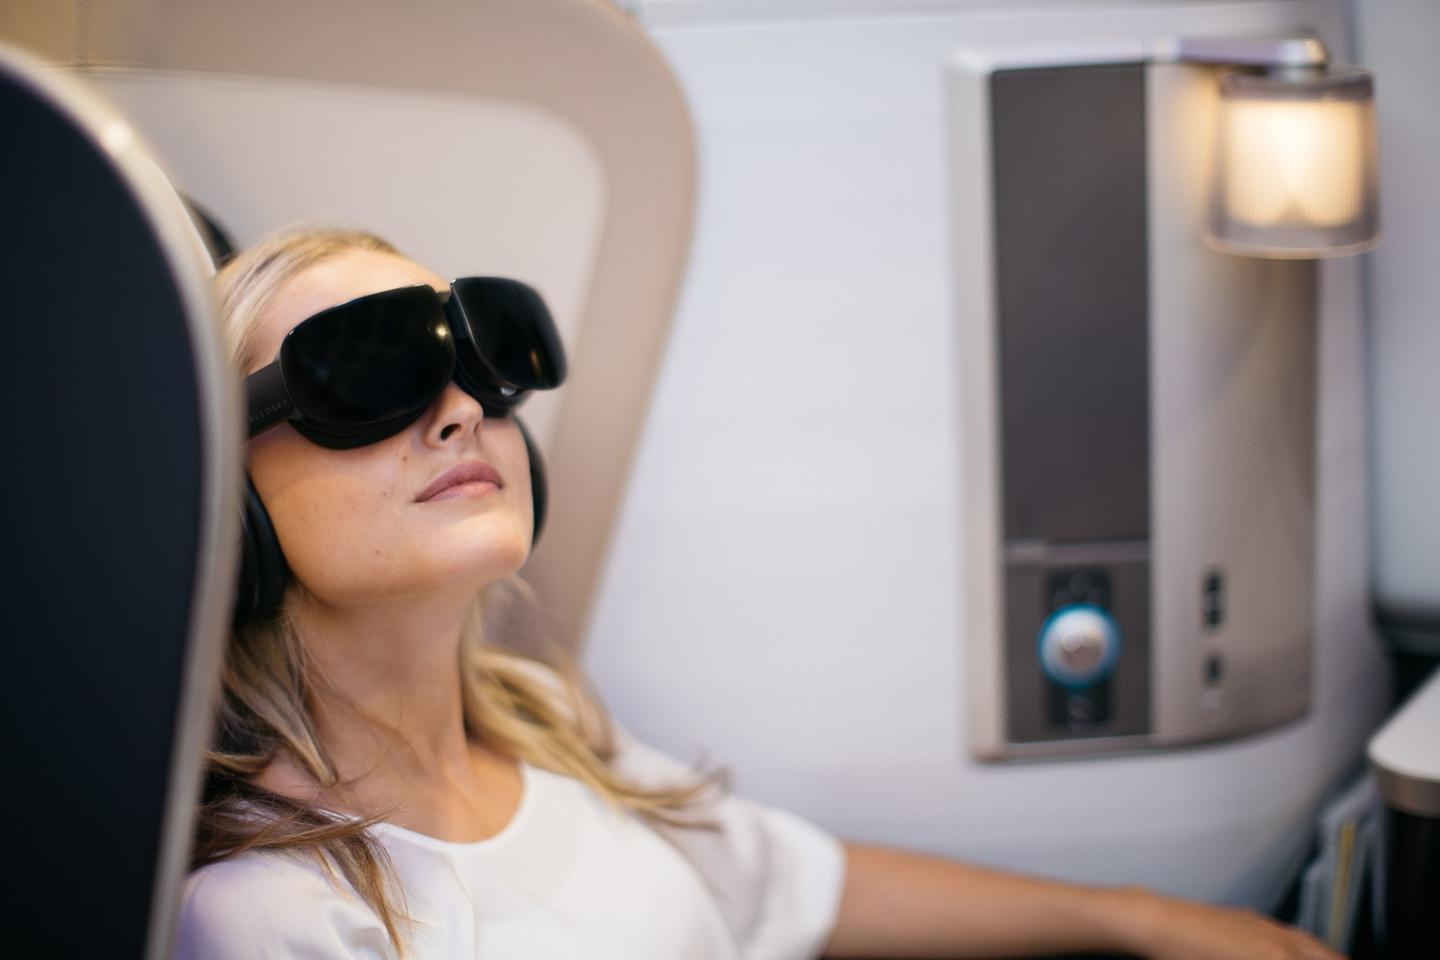 First class passengers on select BA117 flights between London and New York are being offered the chance to escape into an immersive entertainment experience courtesy of virtual reality headsets